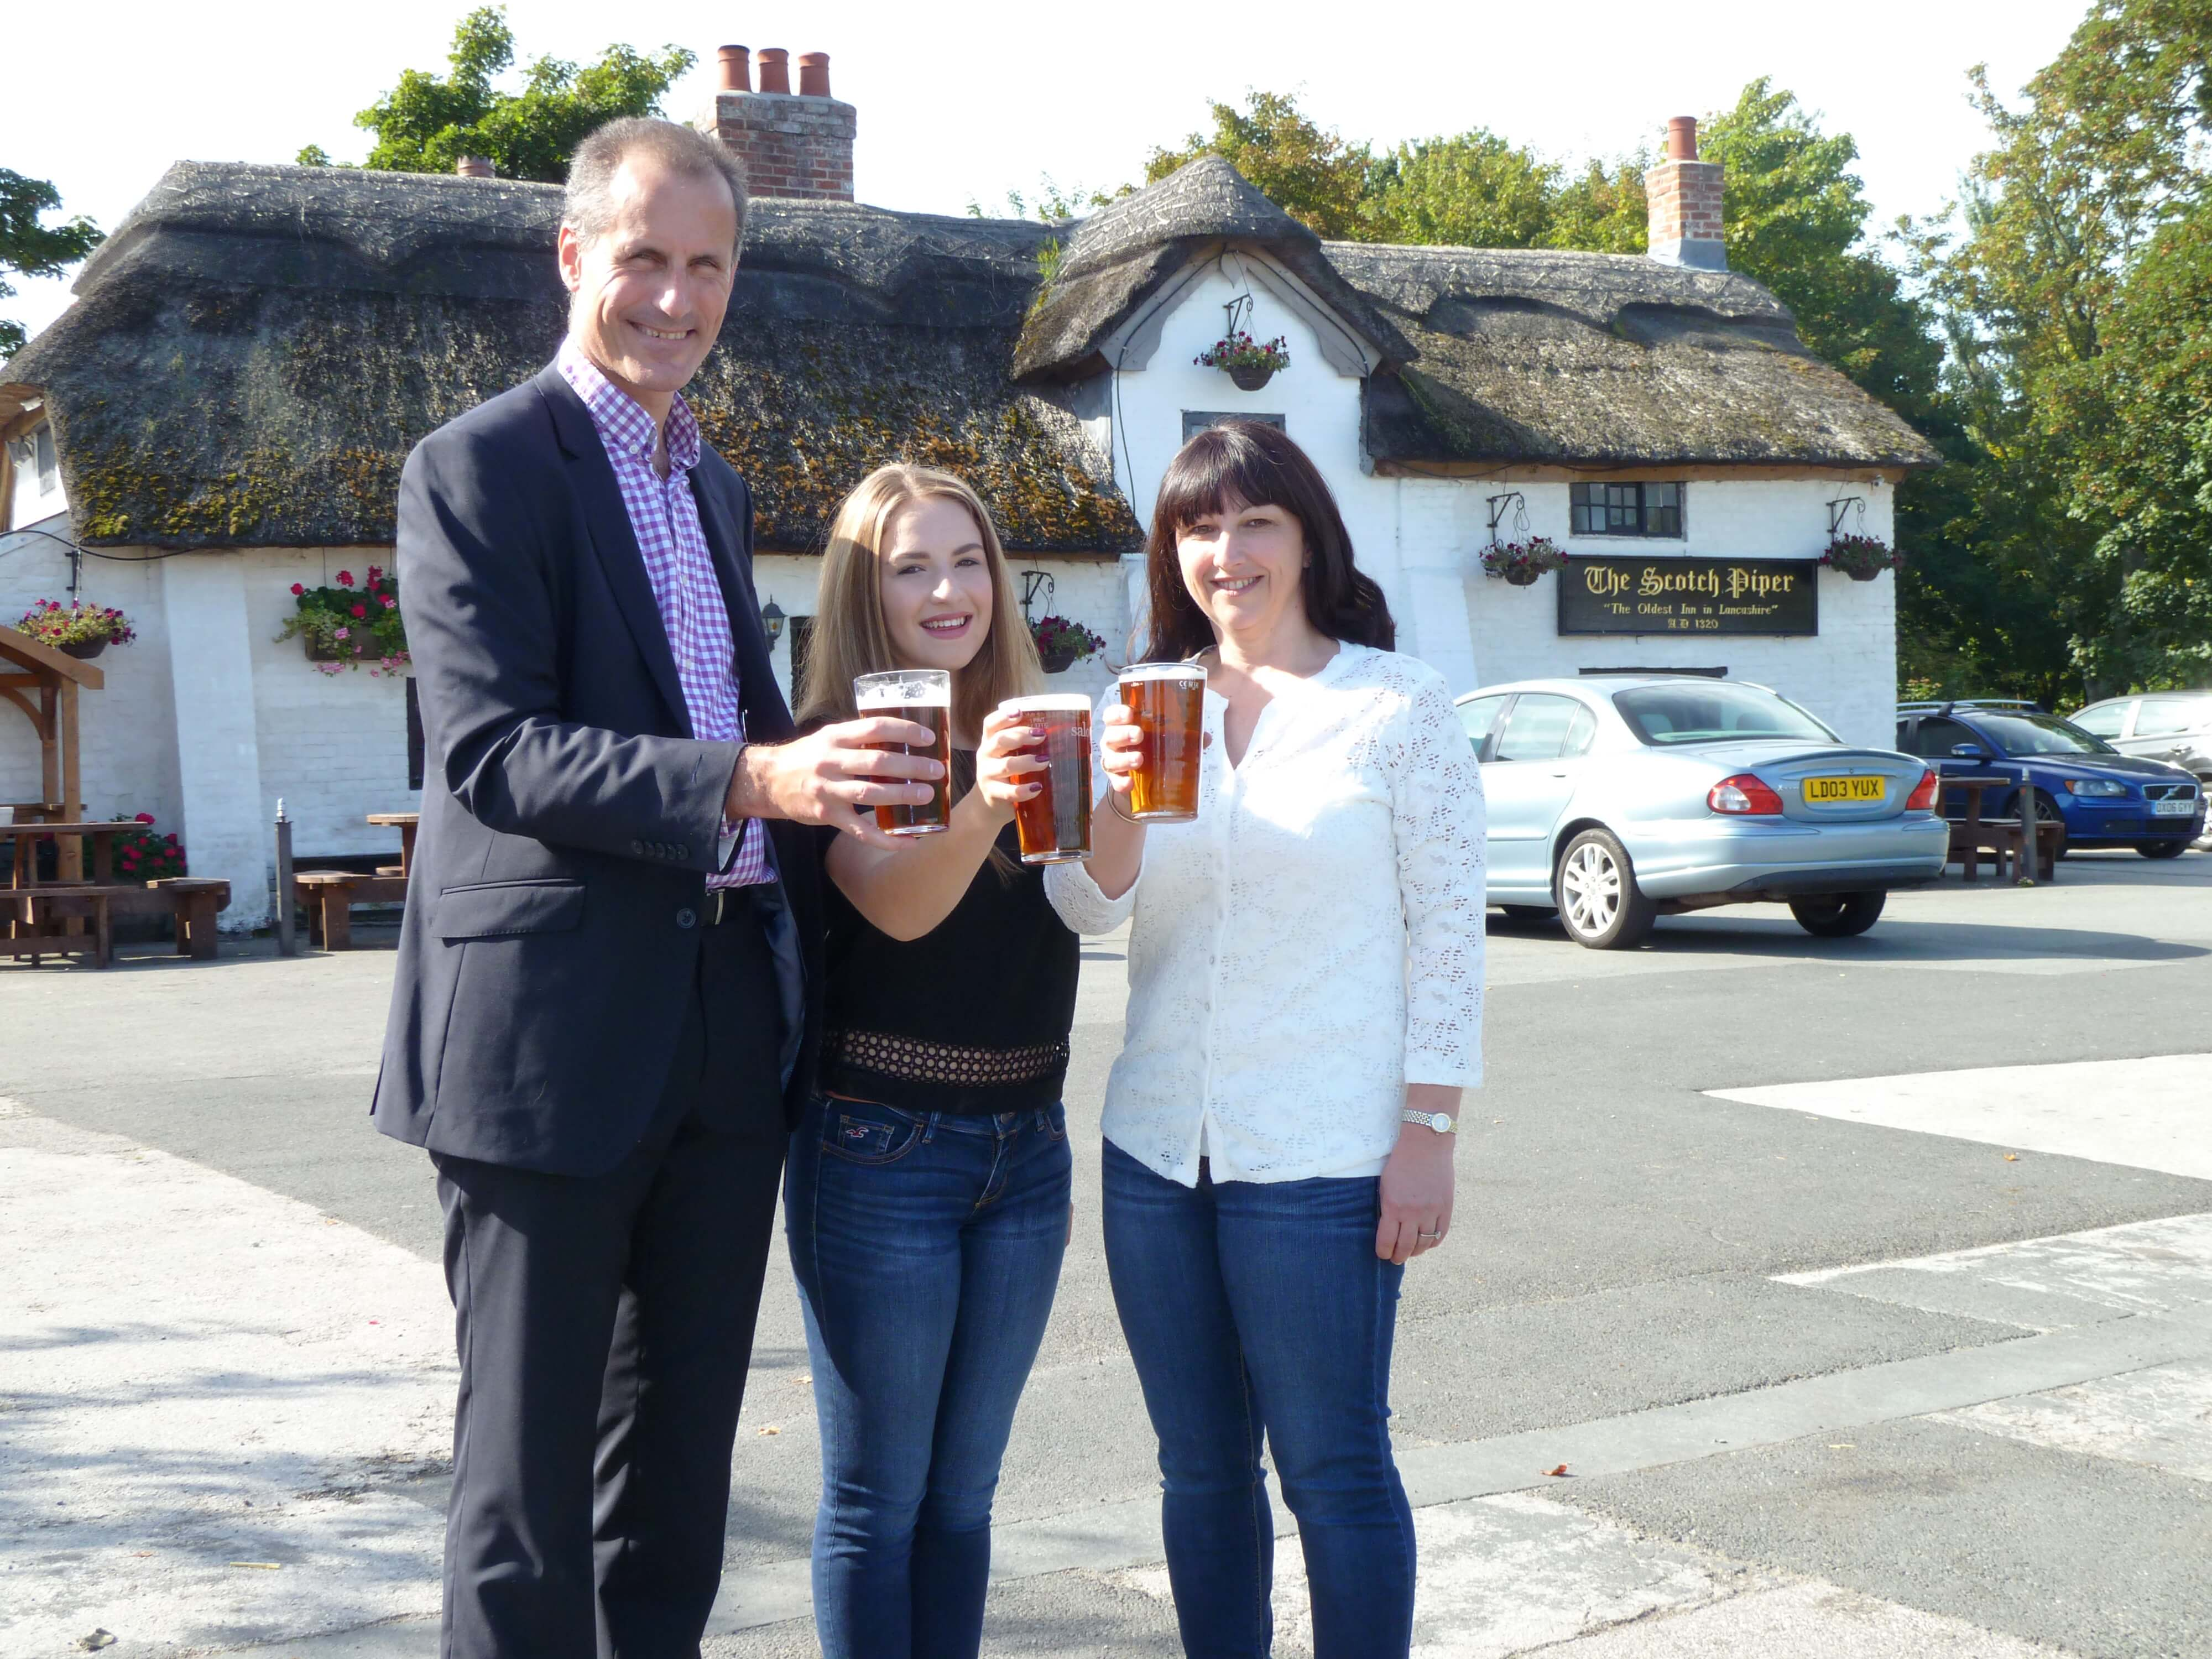 Sefton Central Labour MP Bill Esterson raises a glass with Scotch Piper Inn director Julie Pringle and her daughter Emma.